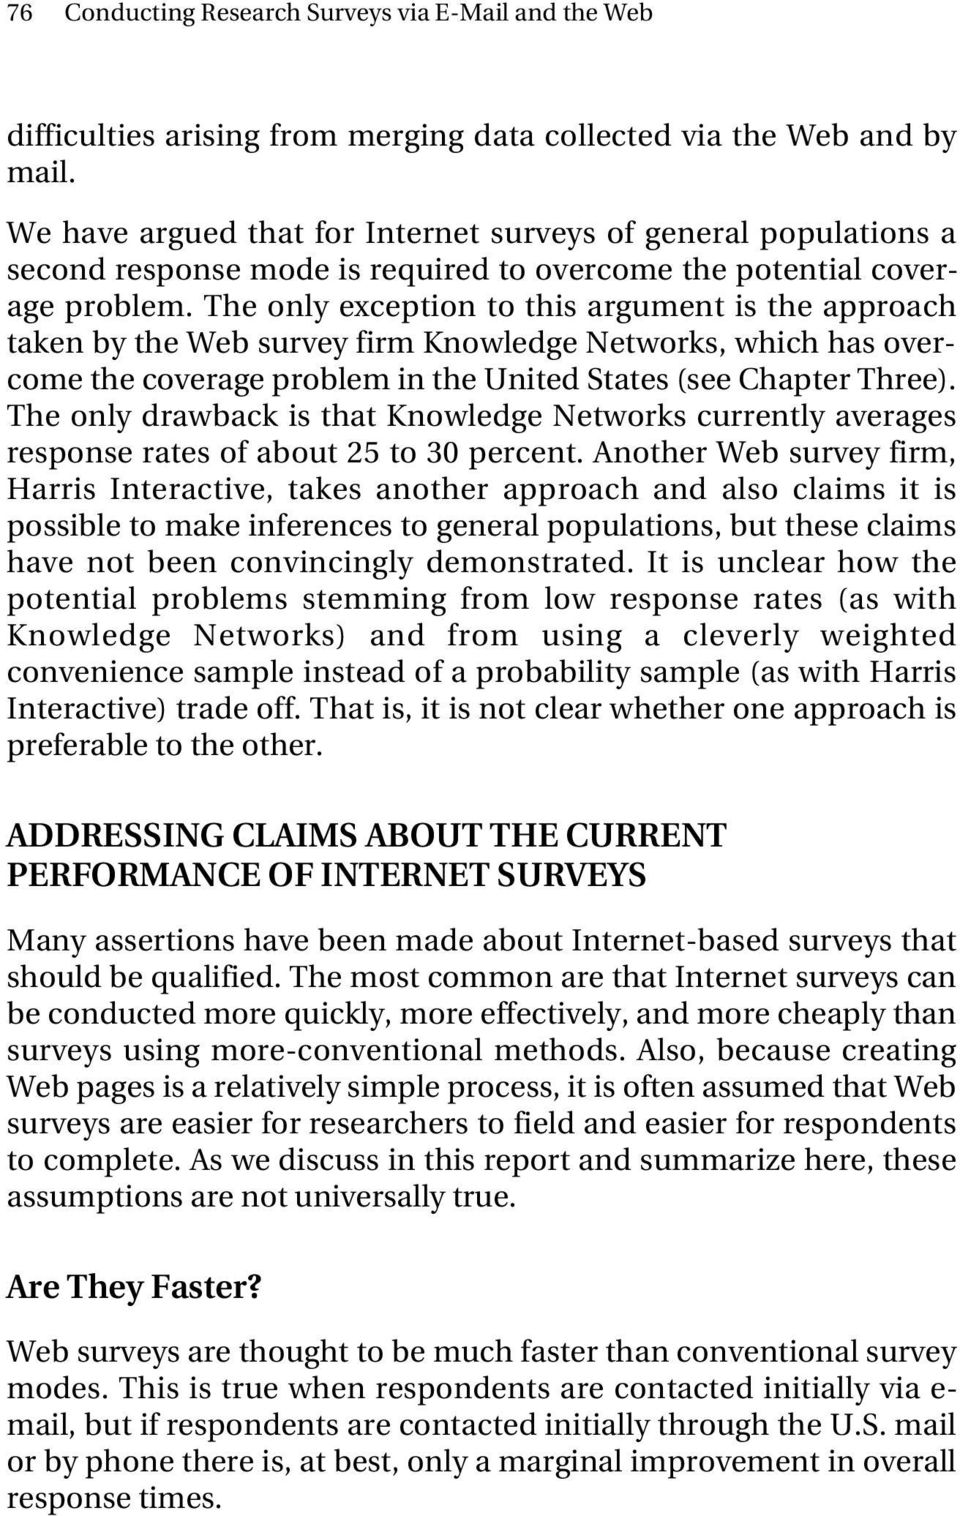 The only exception to this argument is the approach taken by the Web survey firm Knowledge Networks, which has overcome the coverage problem in the United States (see Chapter Three).